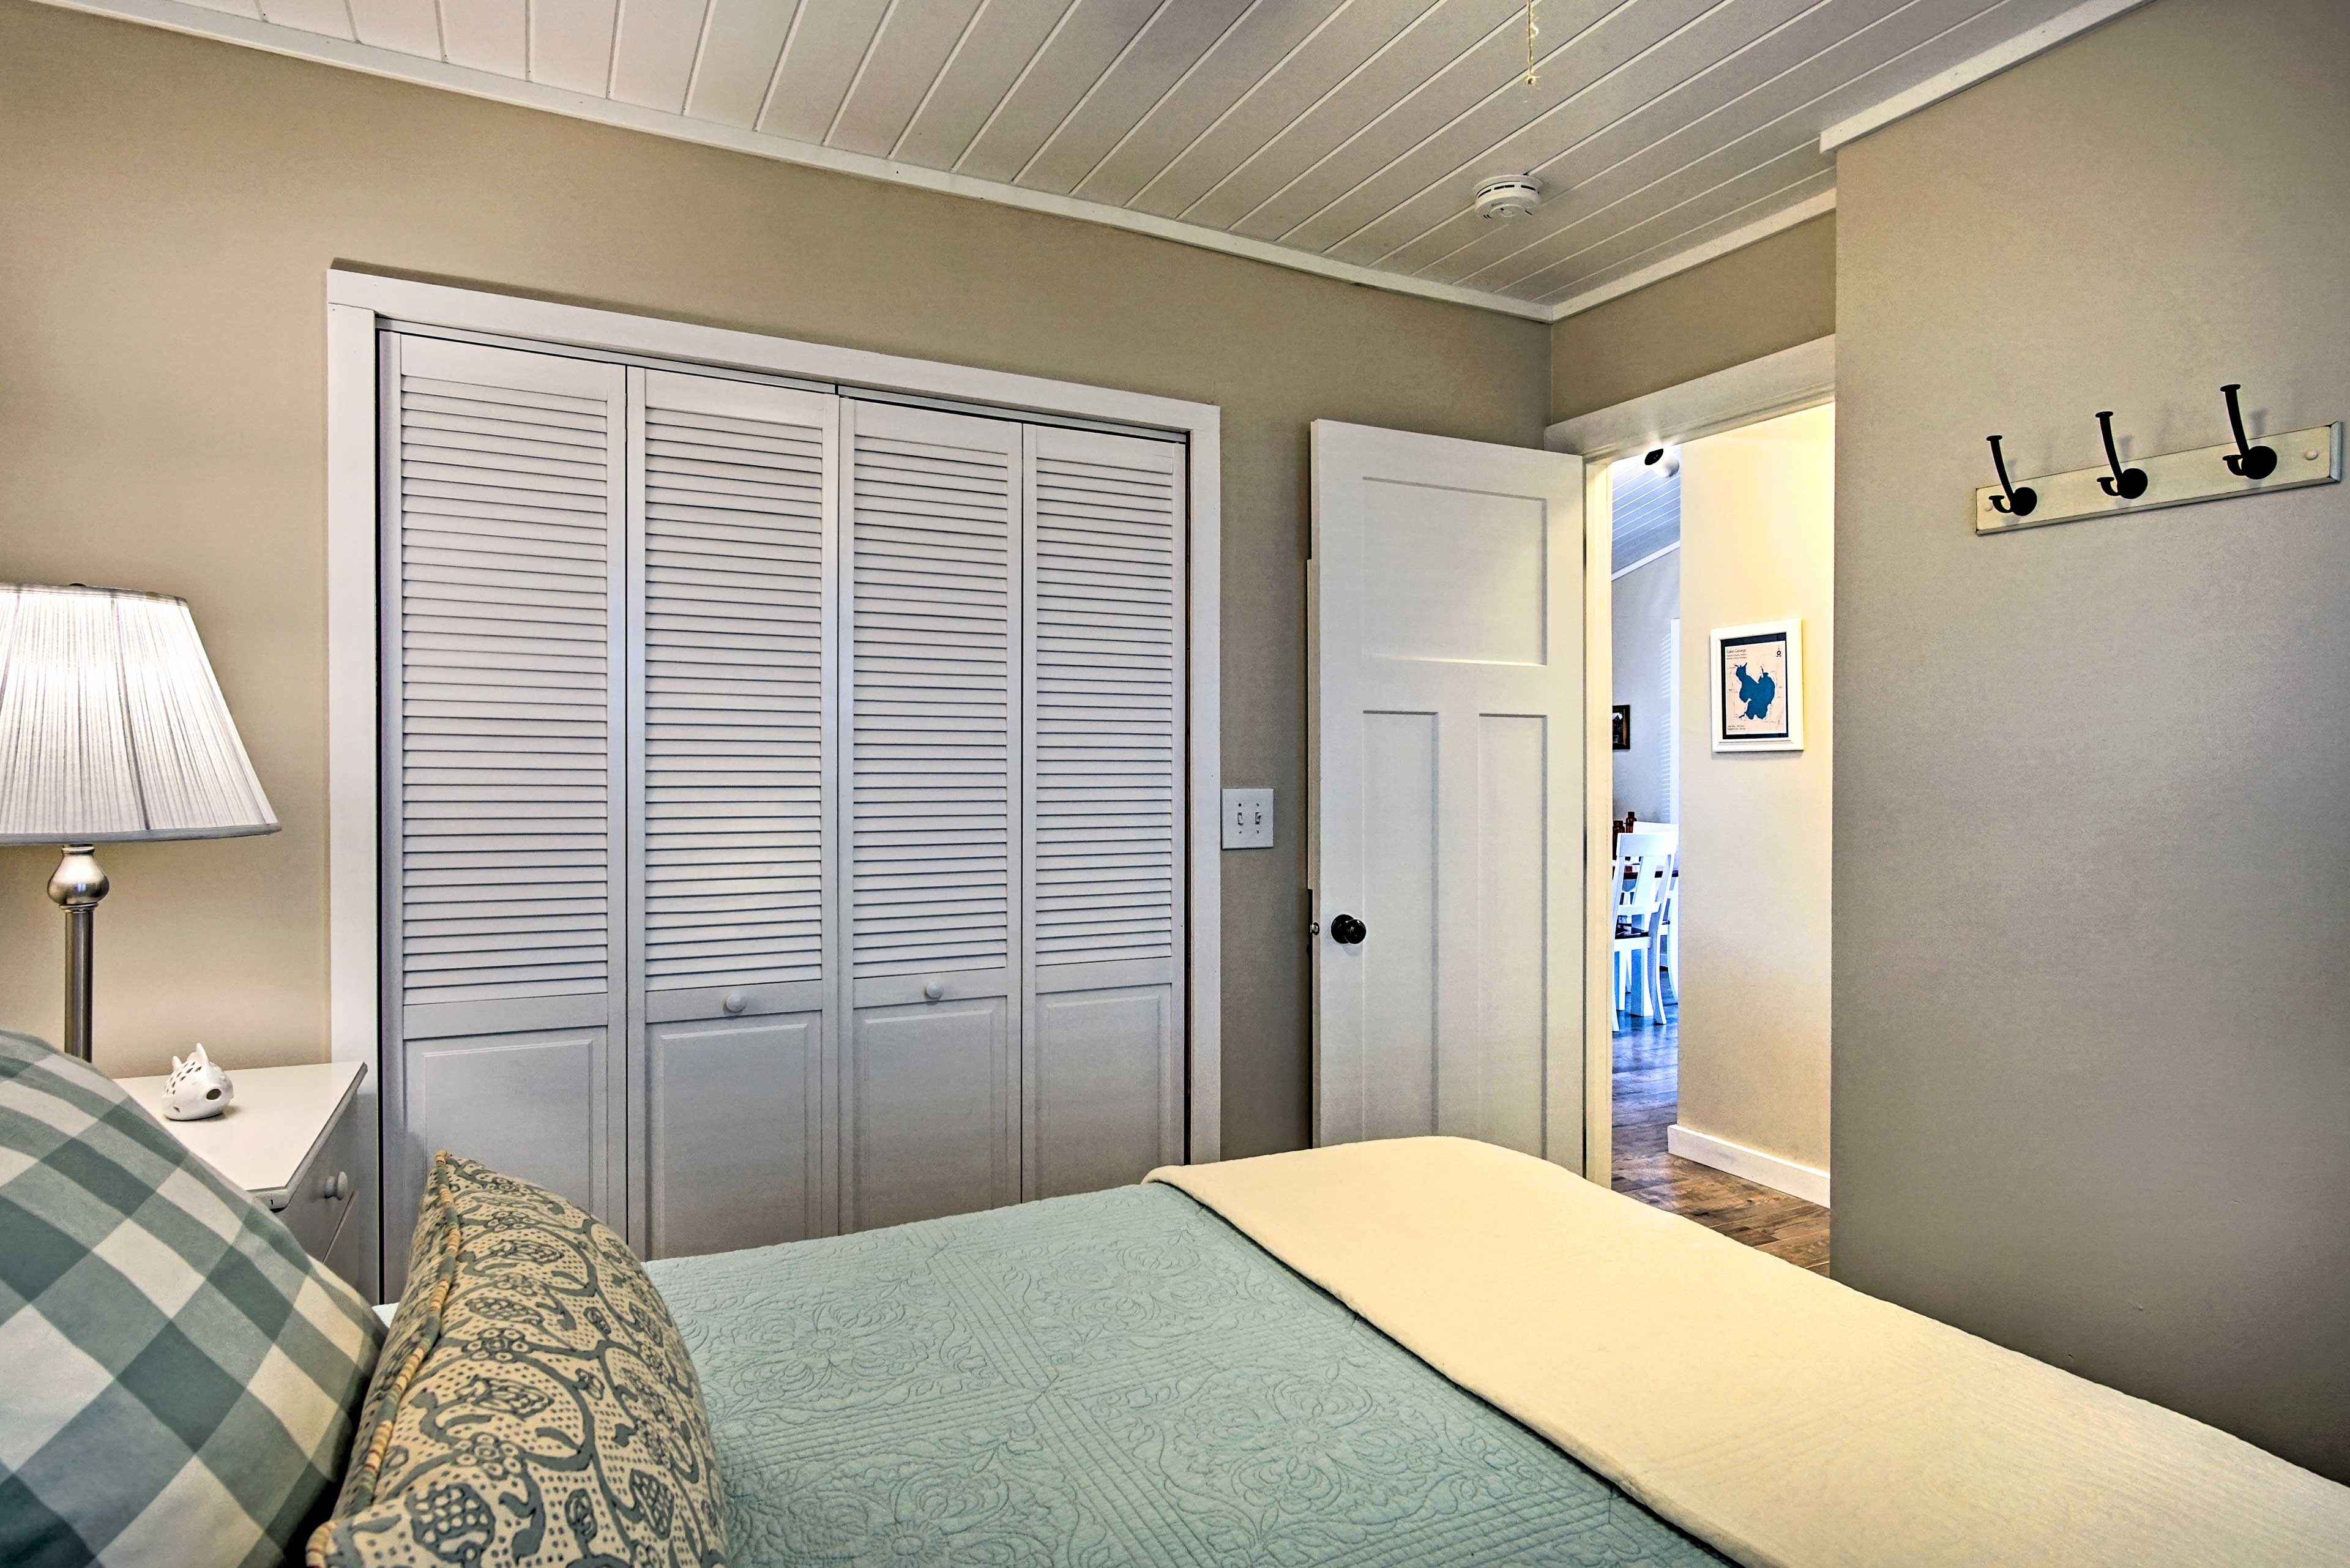 This vacation rental cottage comfortably sleeps up to 6 guests.